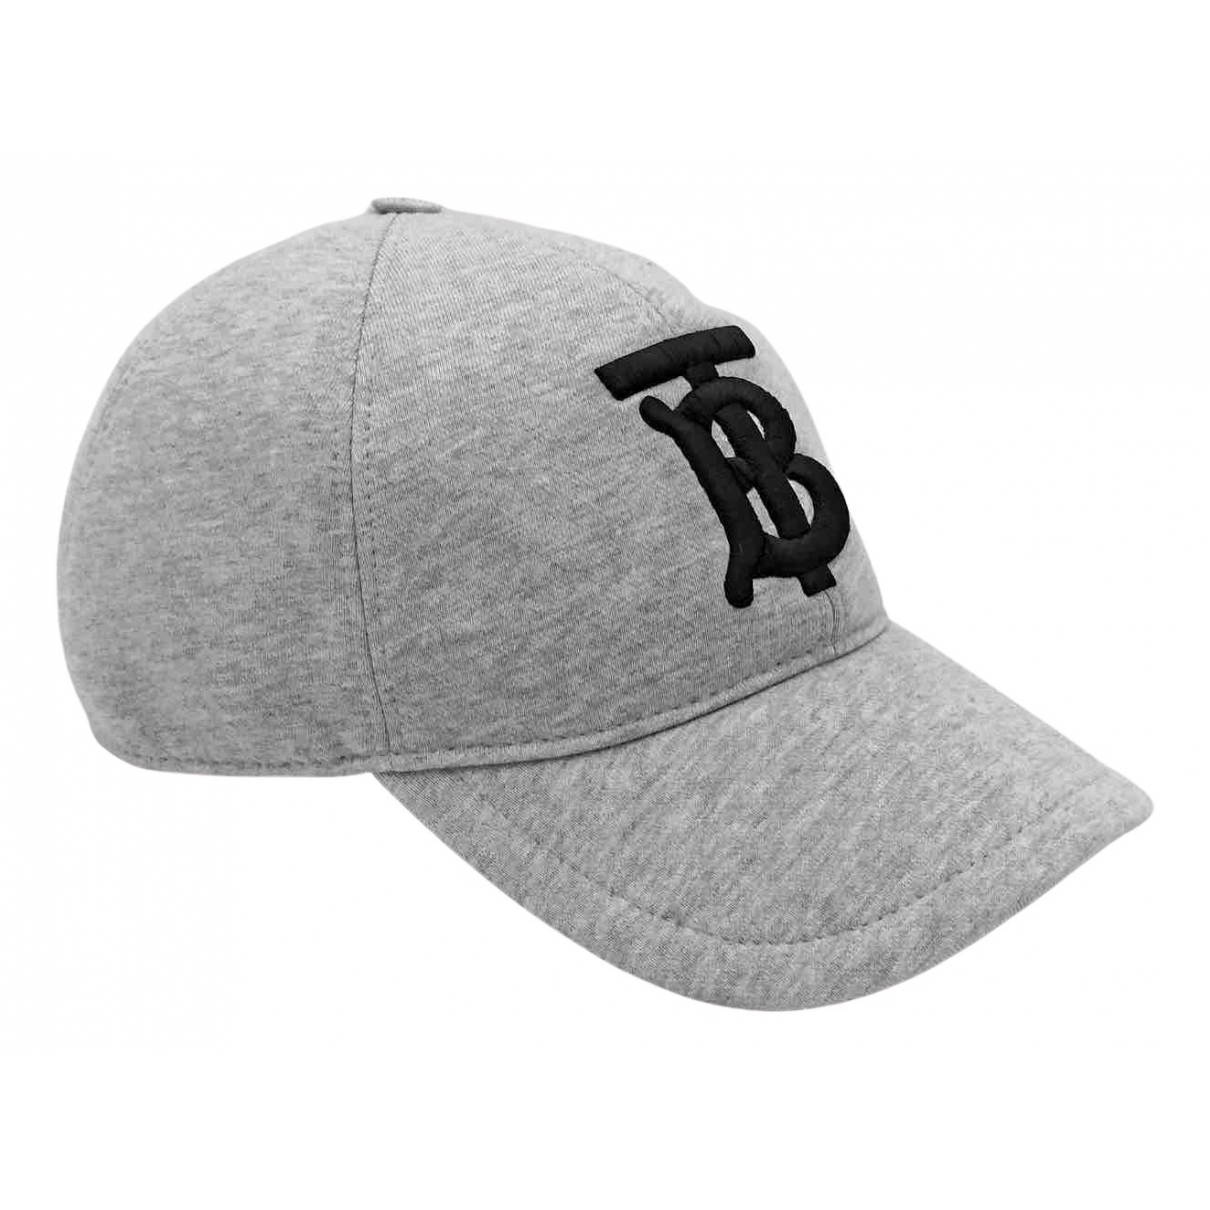 Burberry N Grey Cotton hat & pull on hat for Men 59 cm